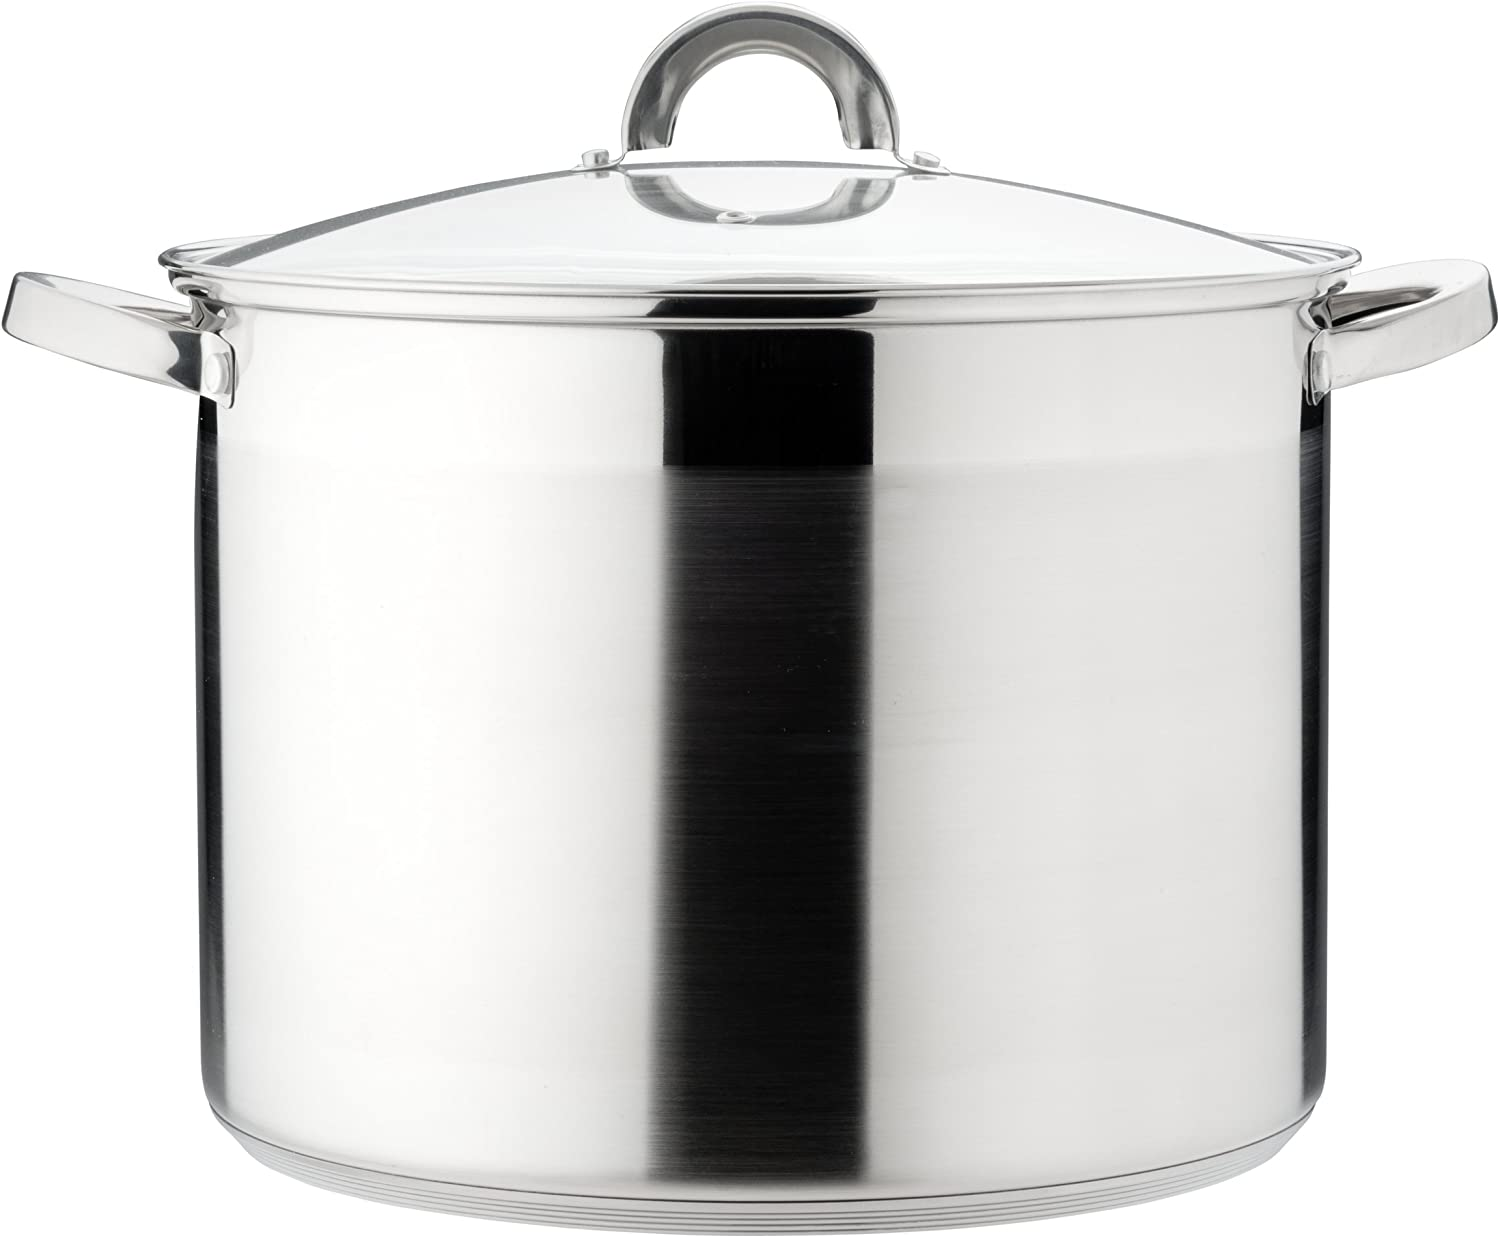 26 x 19 cm KOPF Gigantos Large Cooking Pot with Lid Stainless Steel 9.5 Litter